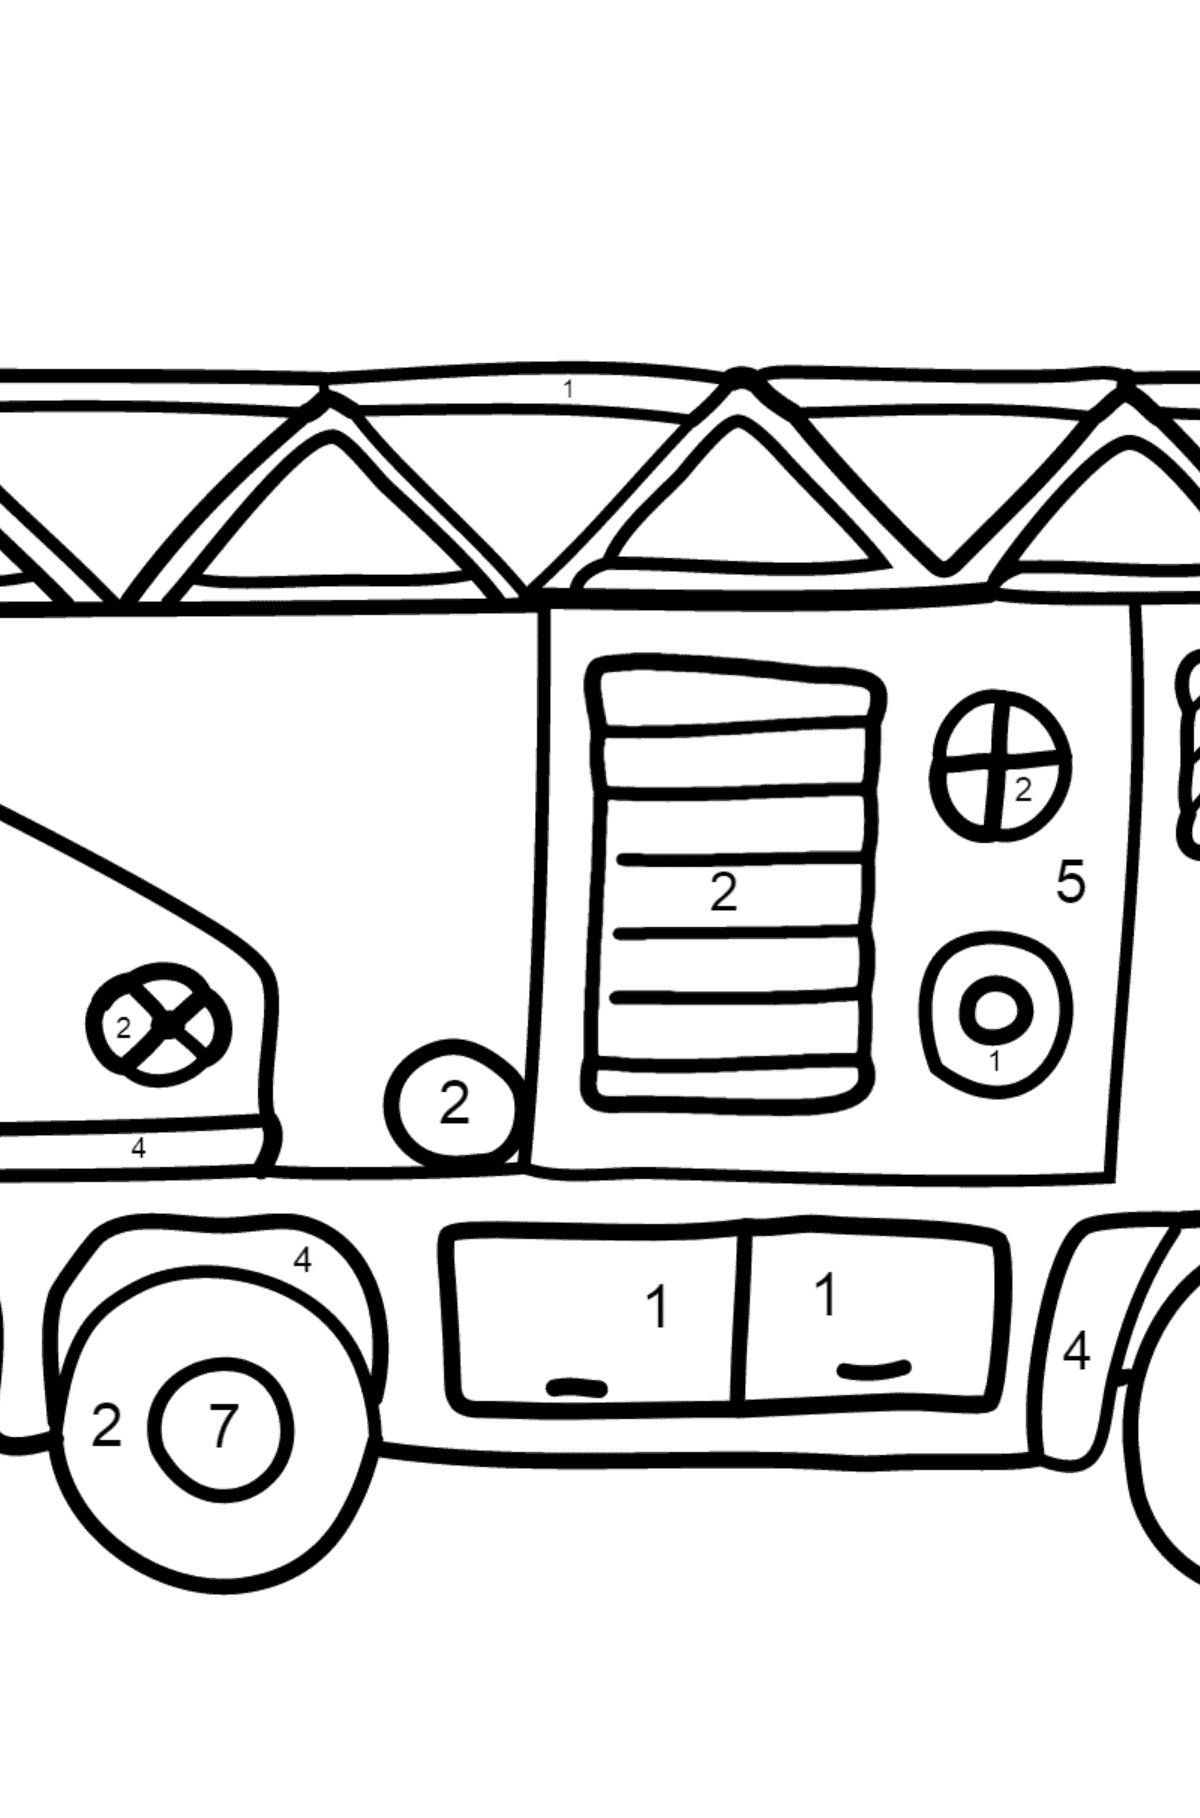 Coloring Page - A Fire Truck for Children  - Color by Number